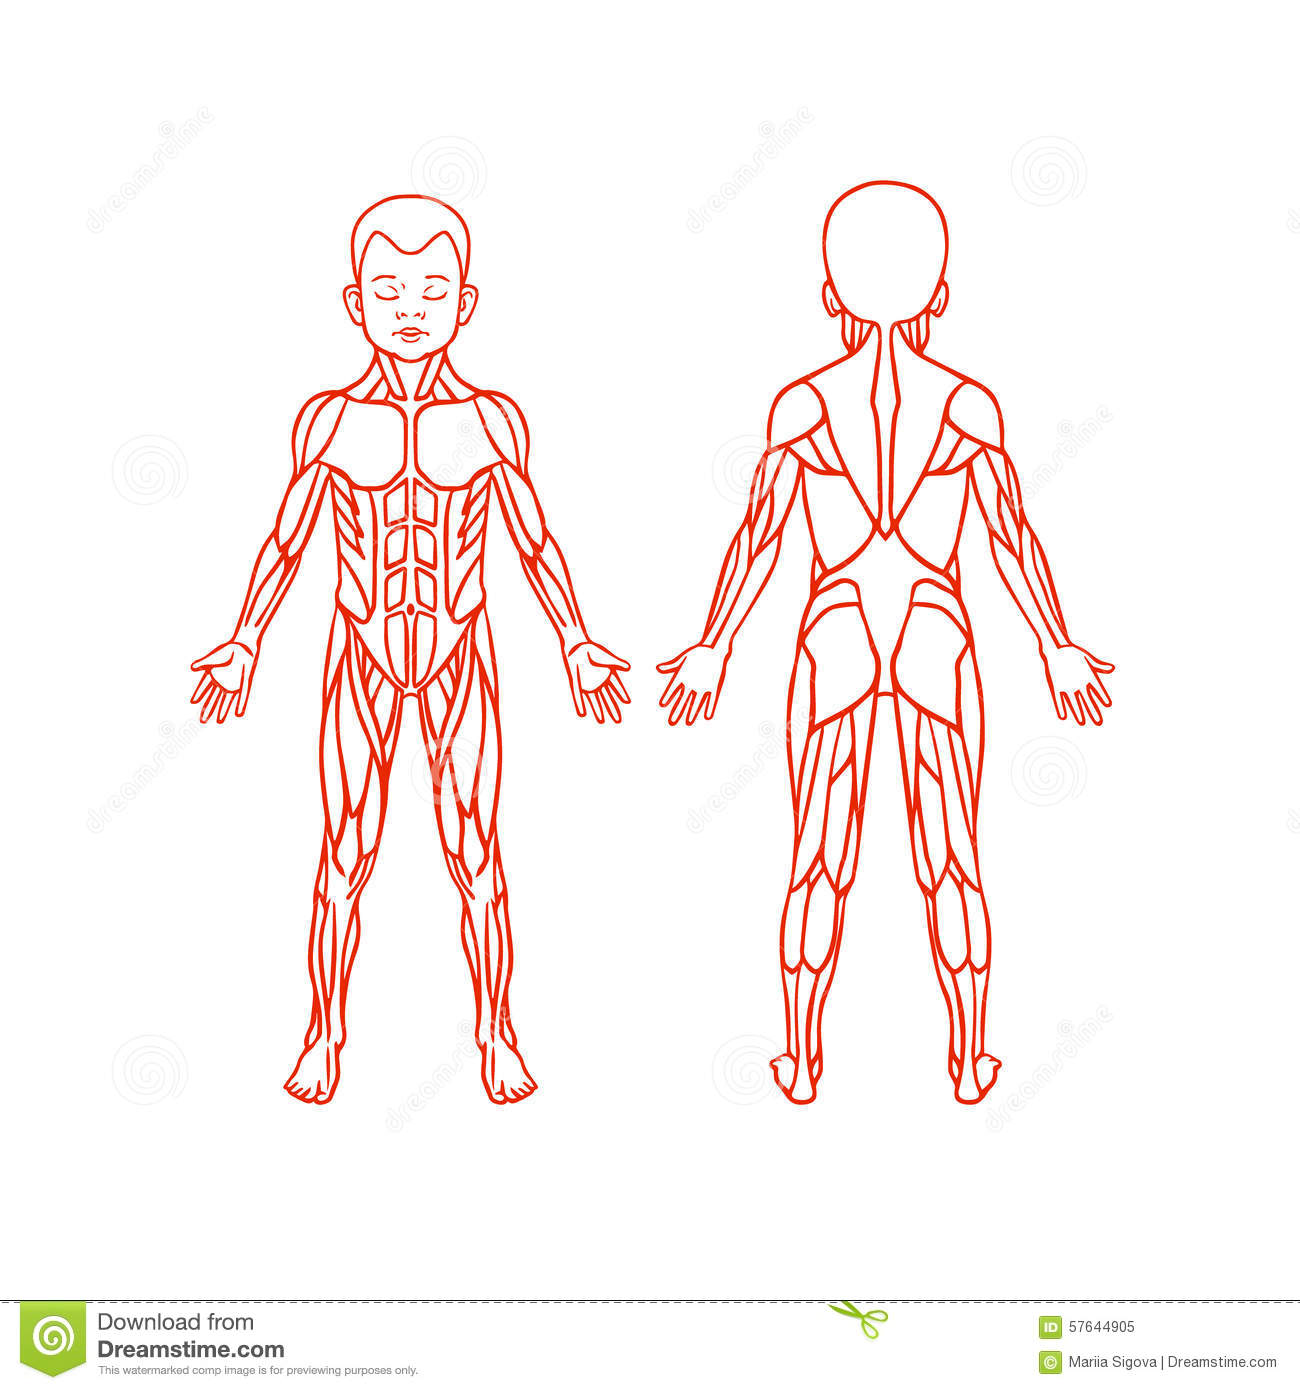 Thigh Popliteal Fossa besides Bmj moreover The Elbow 2 moreover Stock Illustration Anatomy Children Muscular System Exercise Muscle Guide Child Muscle Vector Outline Clipart Front Back View Image57644905 furthermore Skeletal Anatomy Part 1. on figure 9 1 anatomy muscles